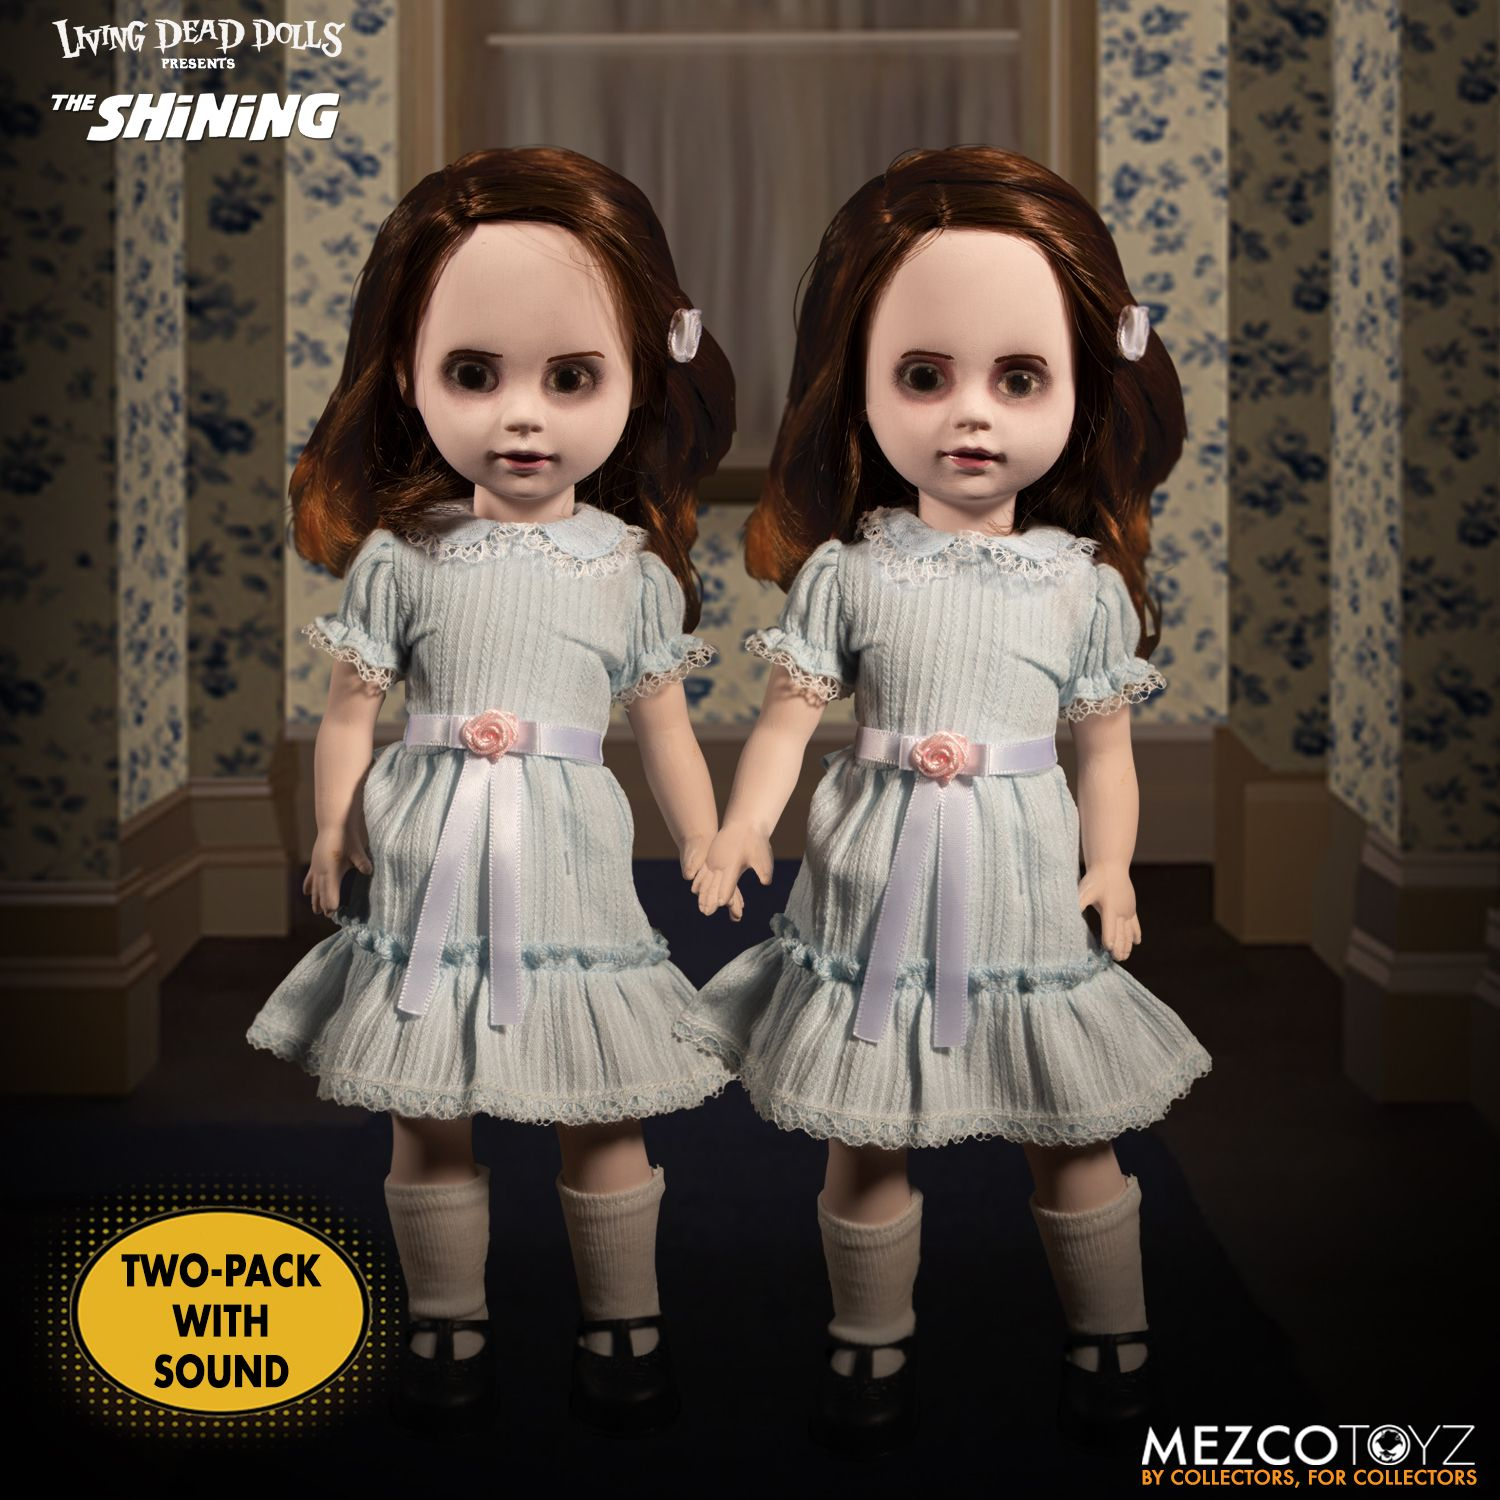 The Shining Living Dead Dolls